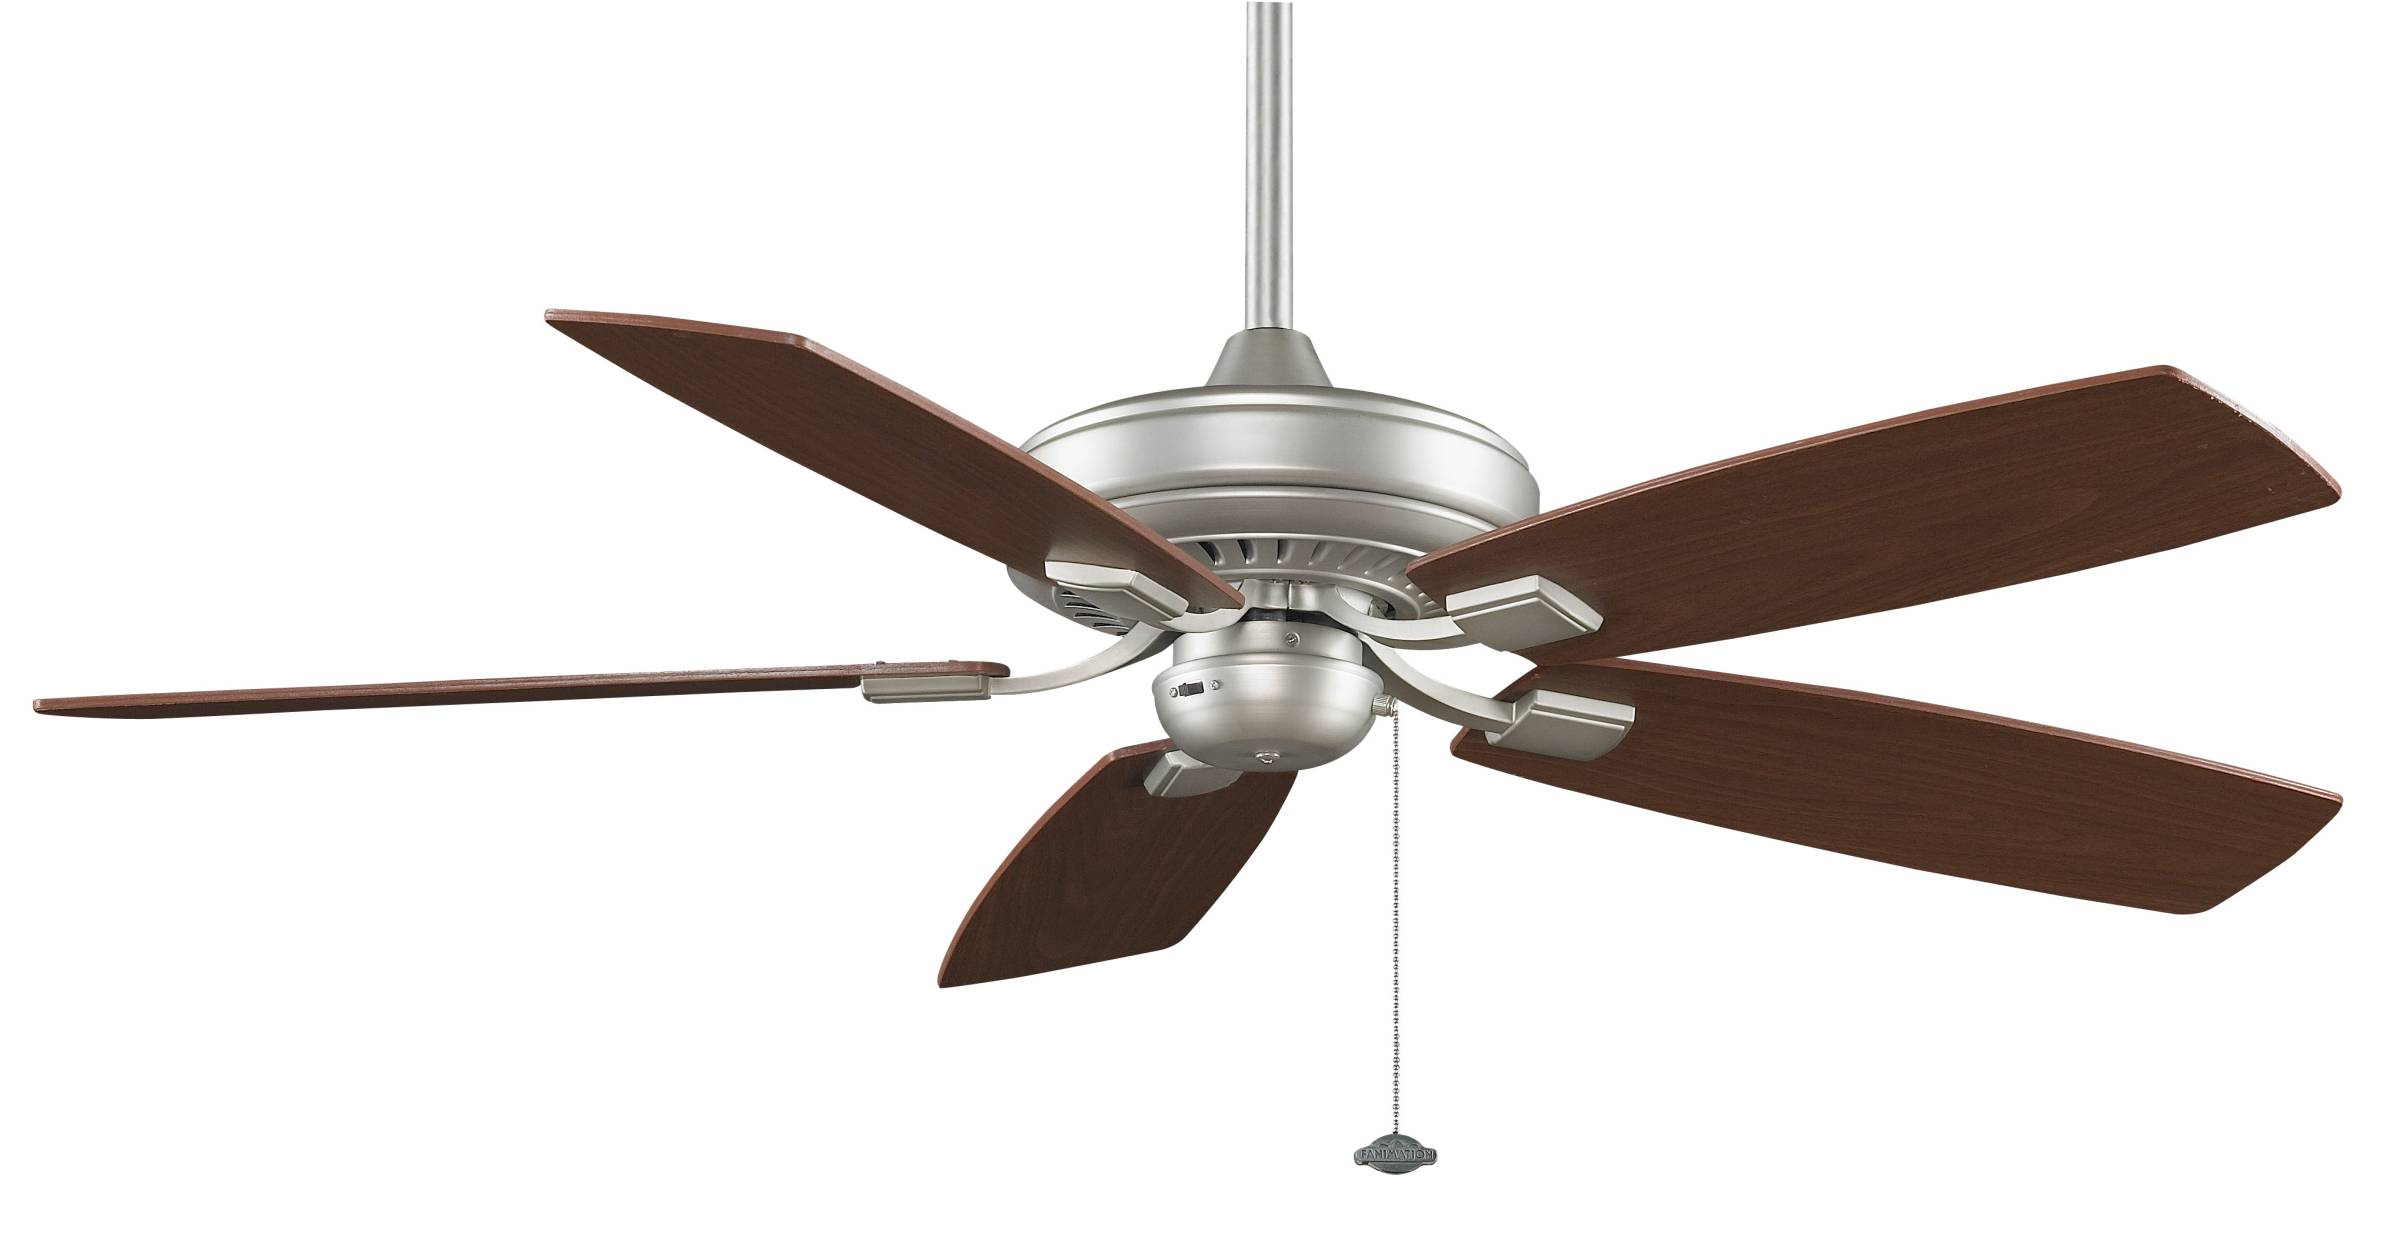 beautiful ceiling fans. Carousel Ceiling Fan Photo - 2 Beautiful Fans G